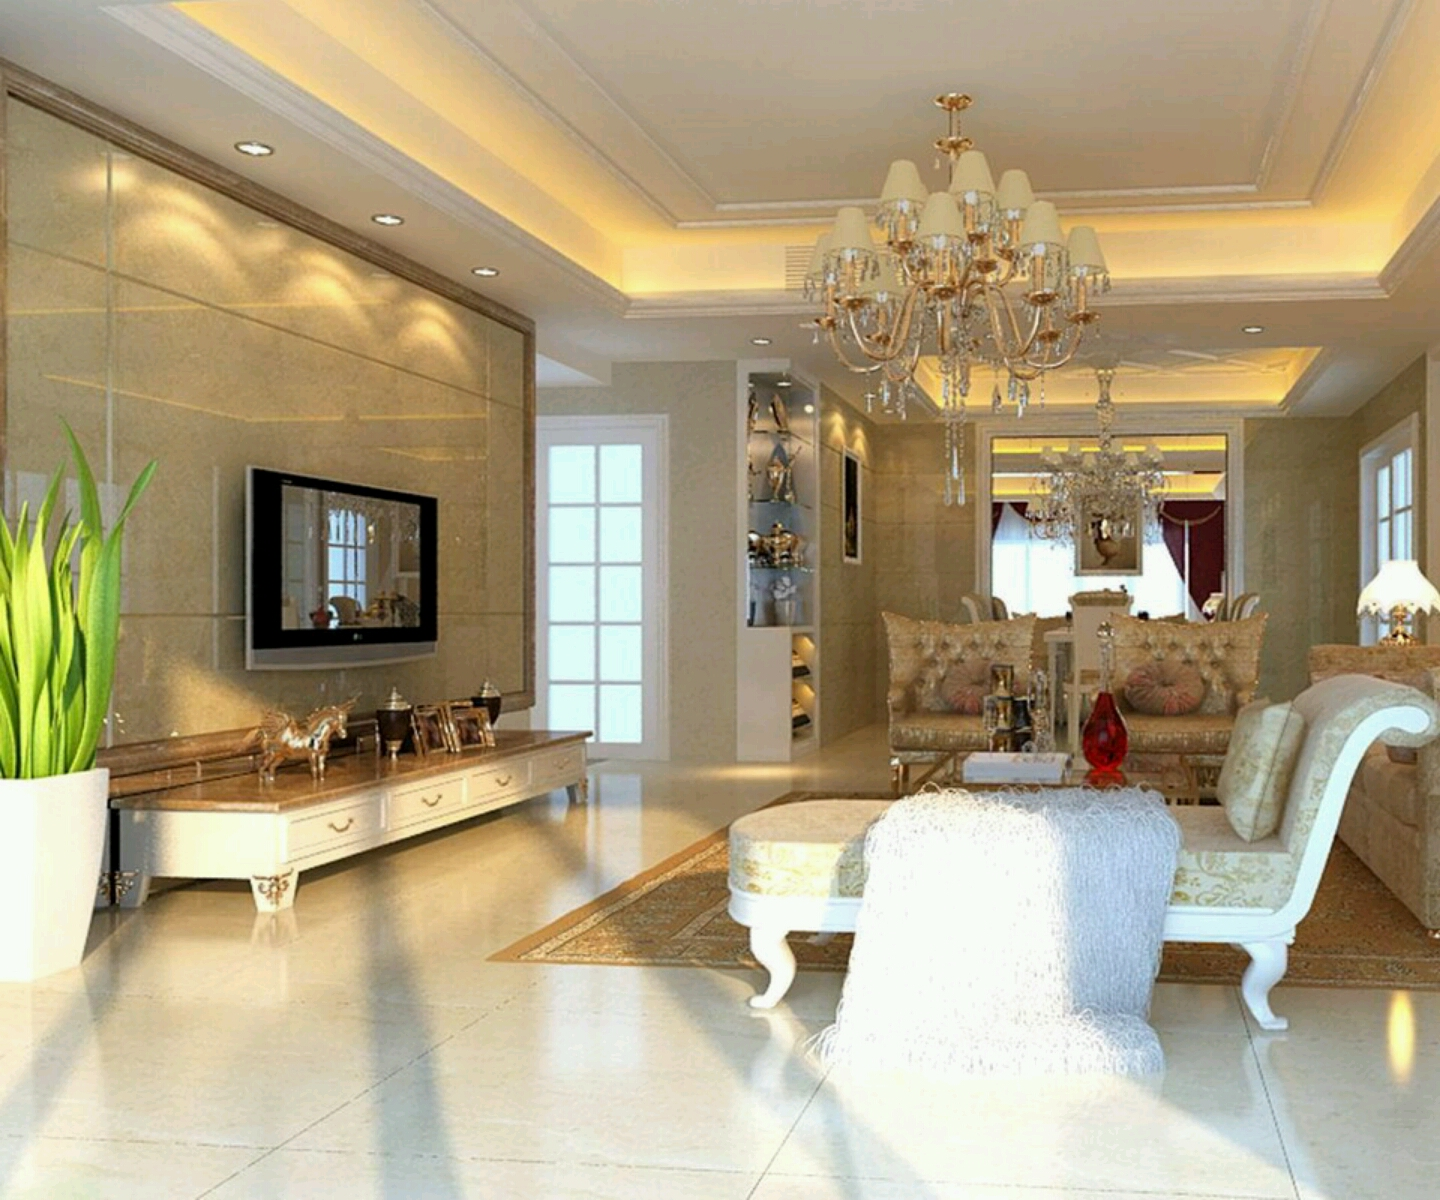 Luxury house interior small